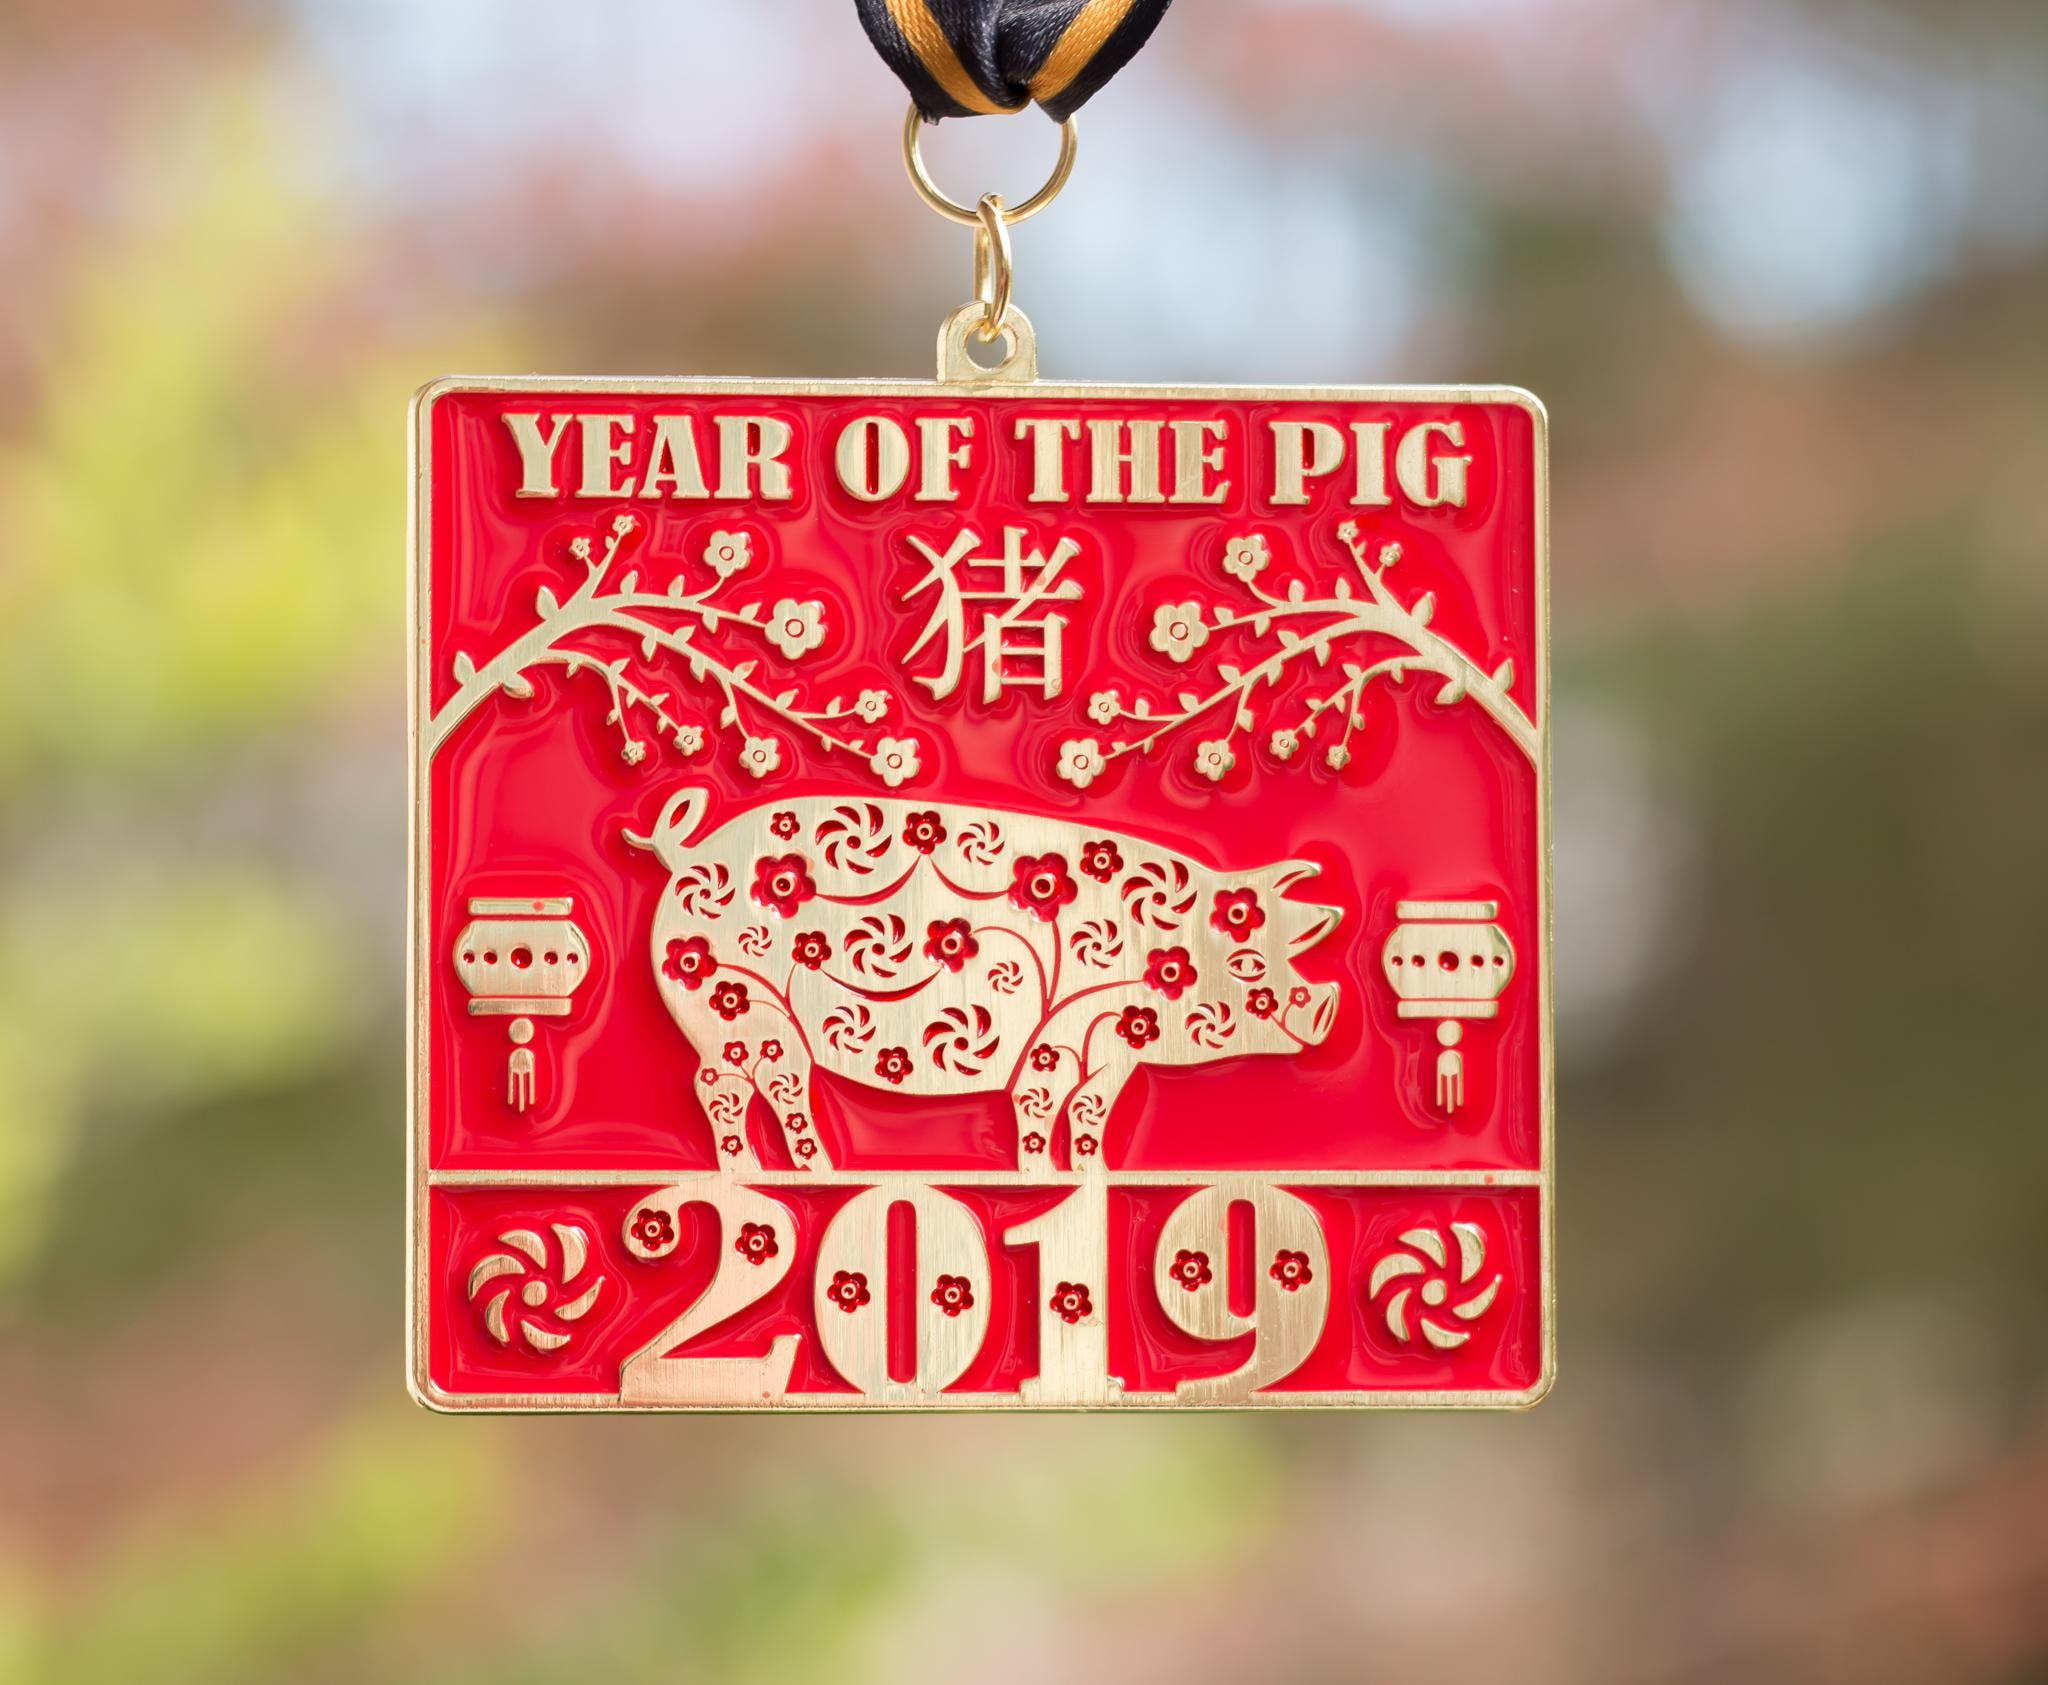 New Year Running and Walking Challenge-Year of the Pig - Springville